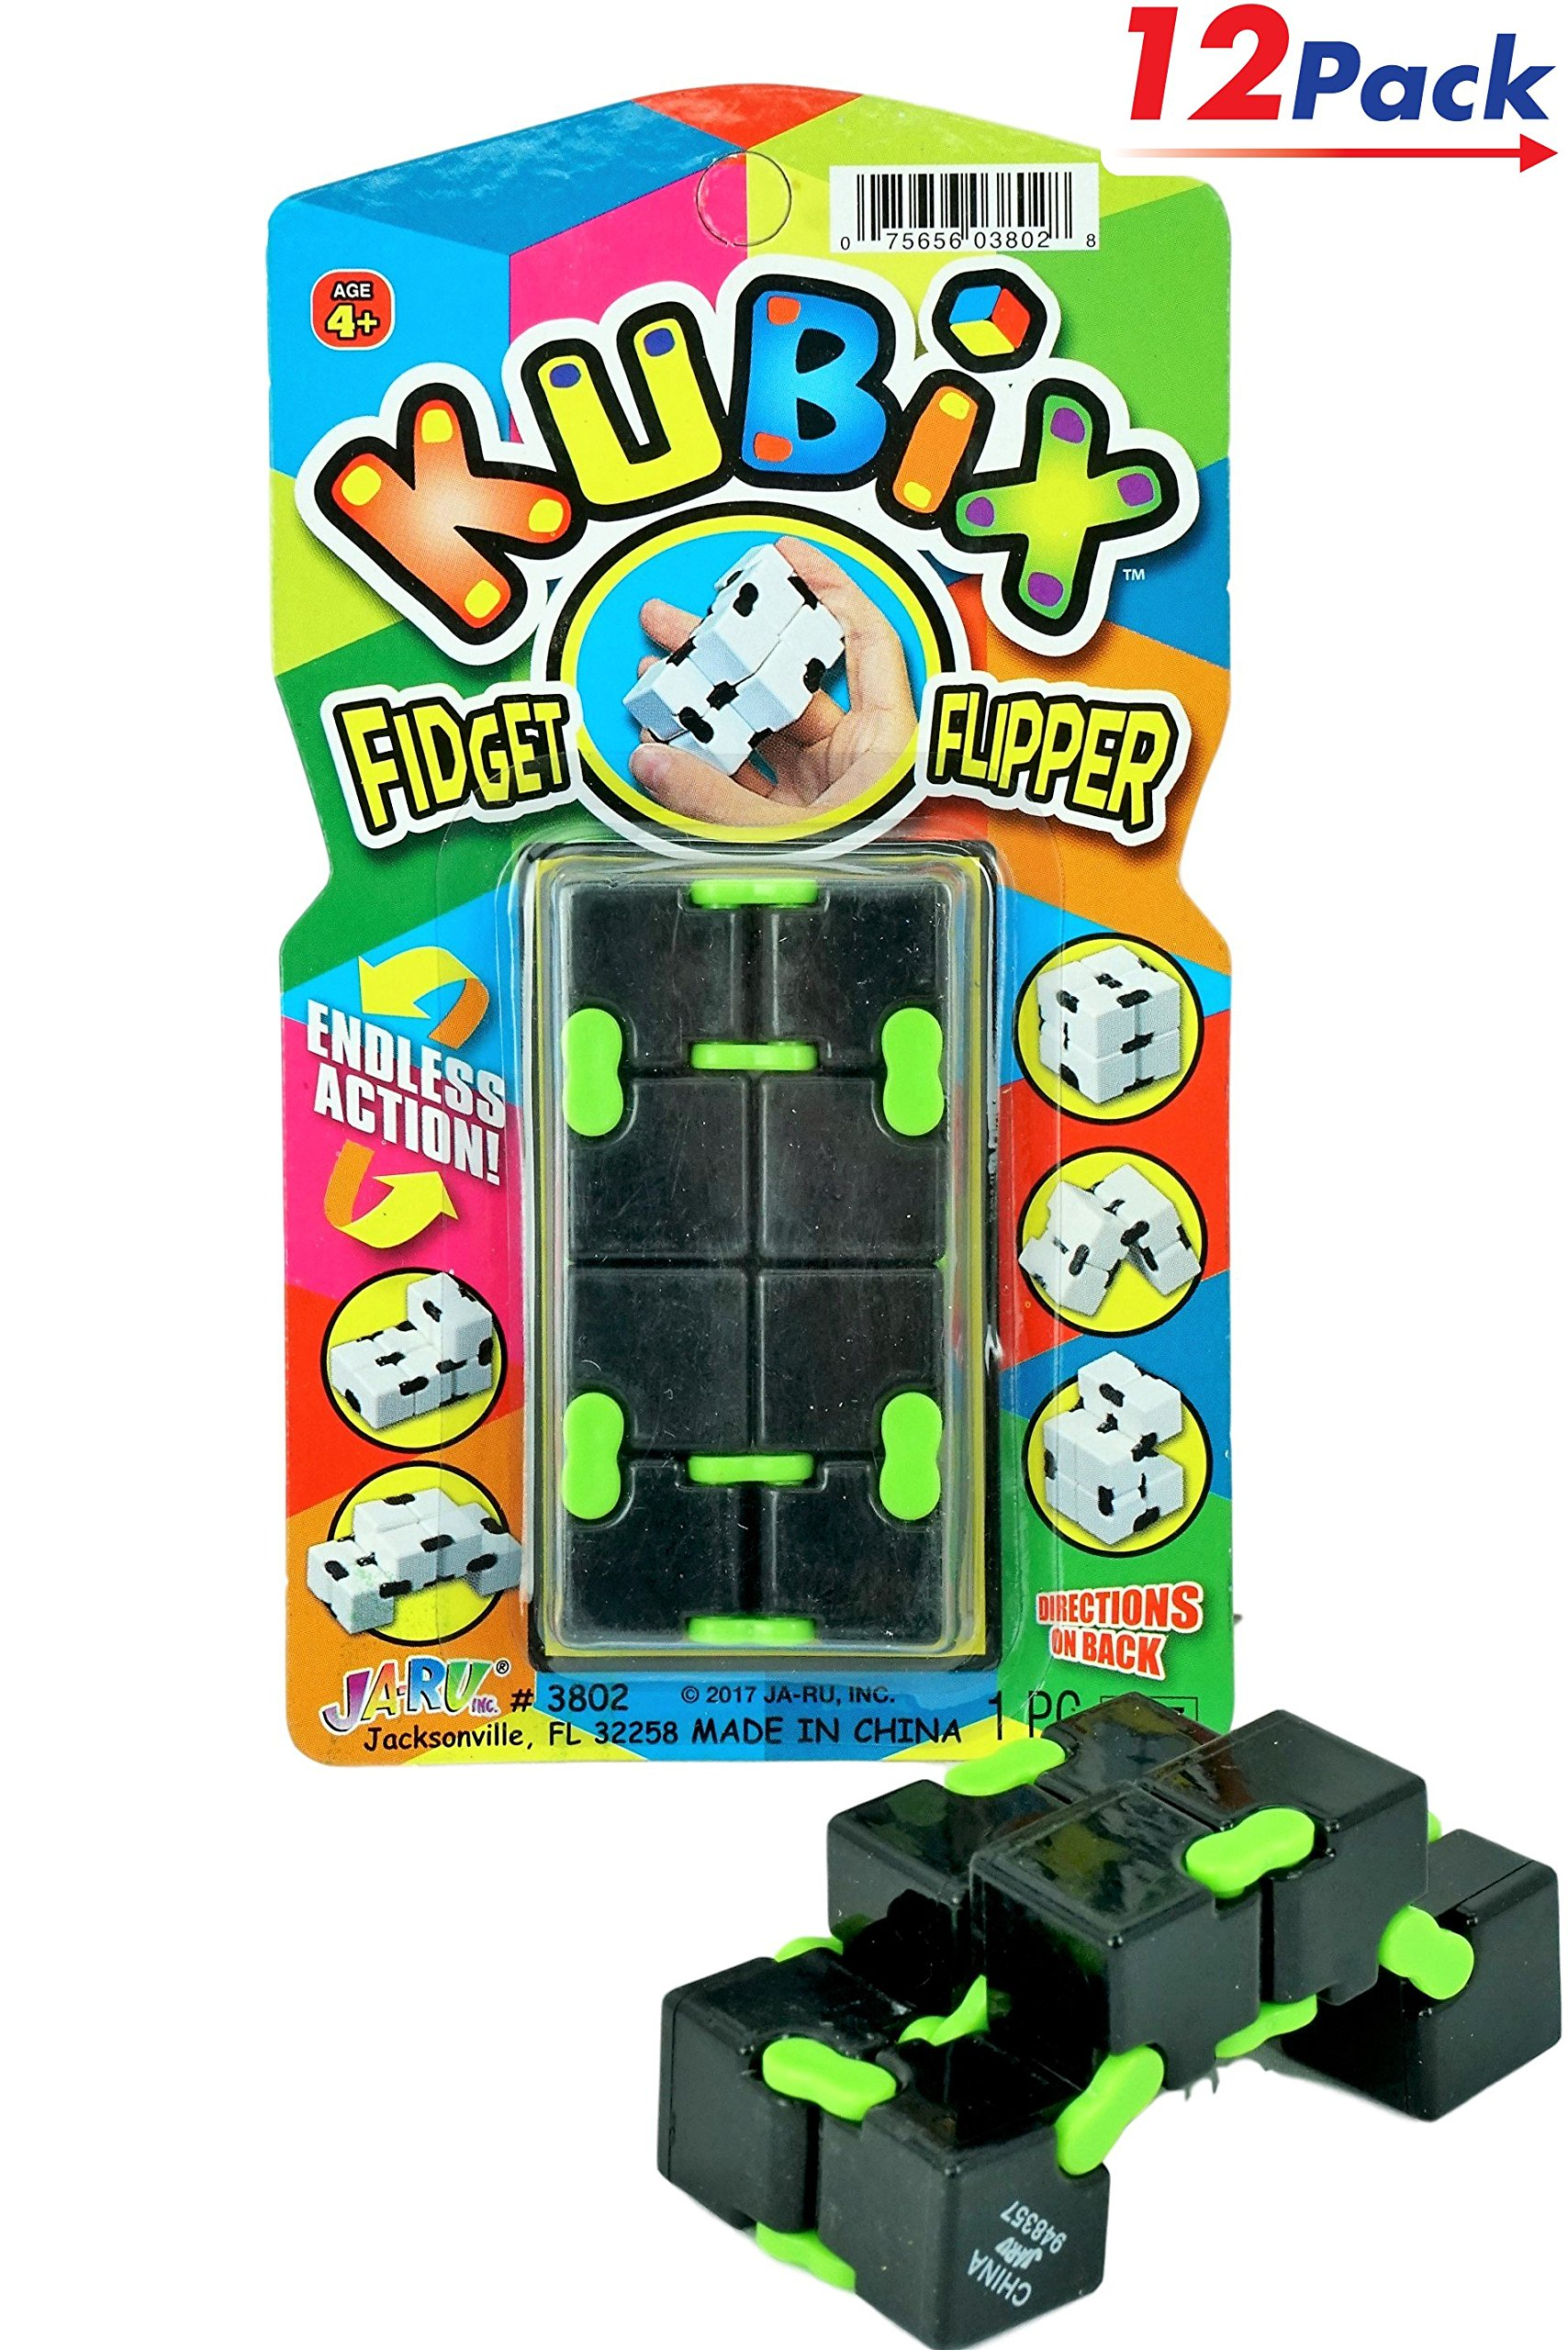 Kubix Speed Cube by JA-RU | Fidget Cube Flip It Endlessly Pack of 12 | Item #3802